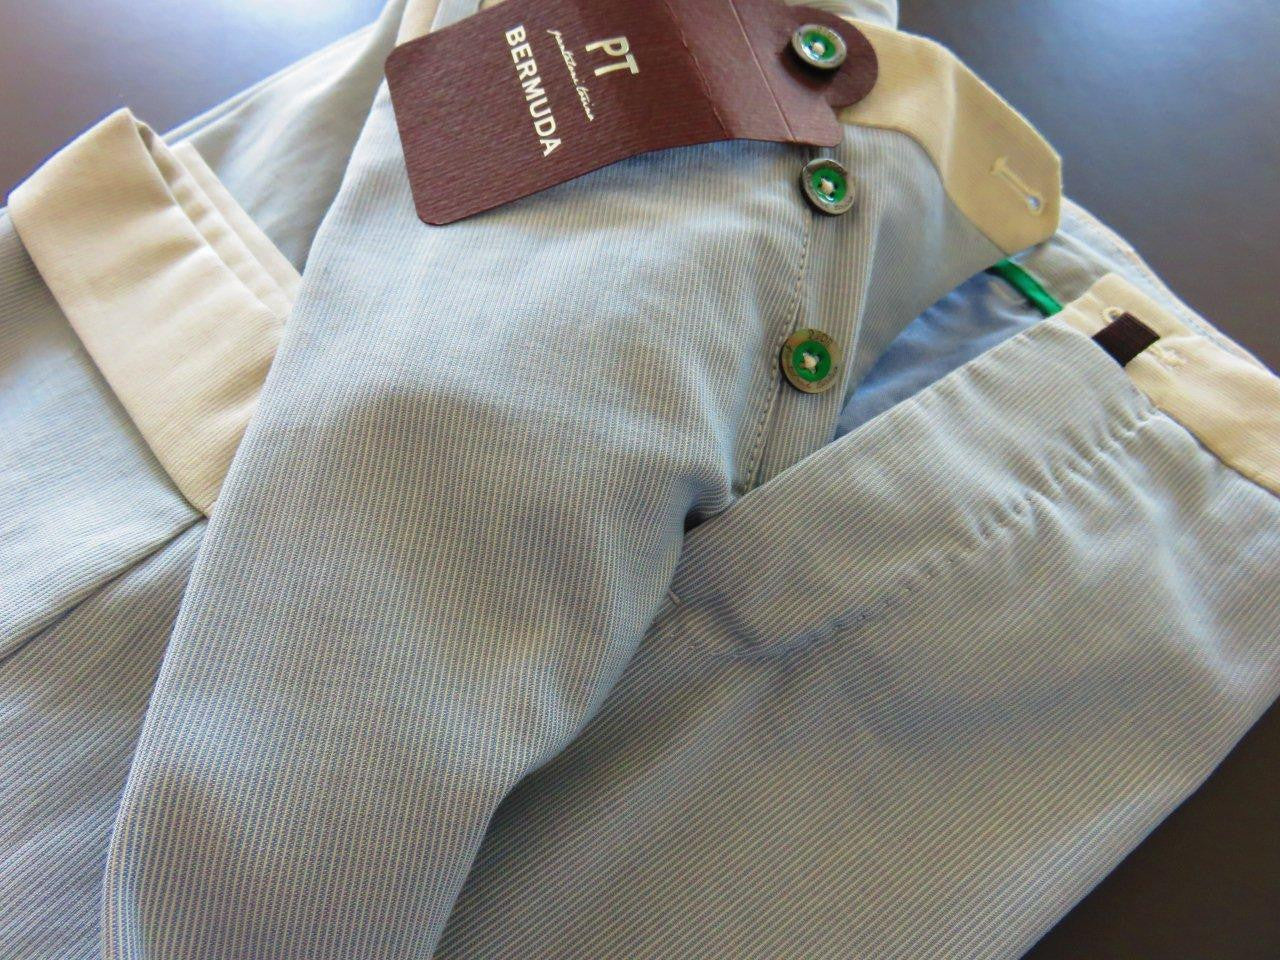 PT01 Pantaloni Torino - Bermuda luxury collection - double twisted